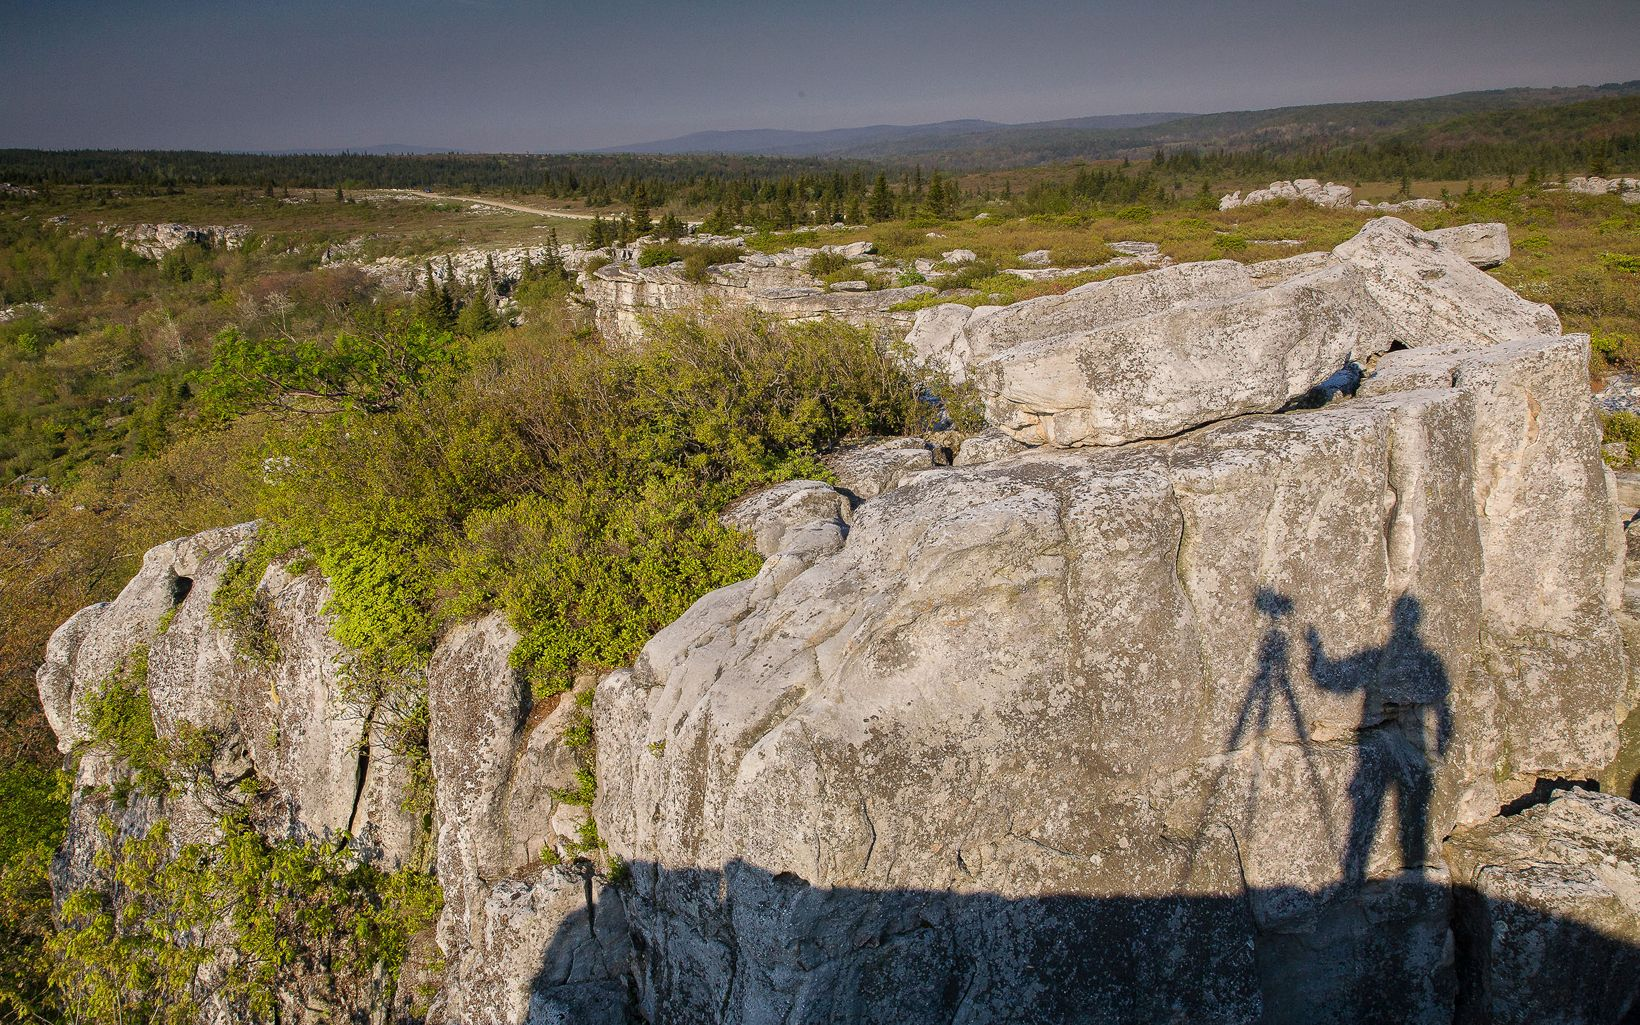 Shadow of a photographer at work in The Nature Conservancy's West Virginia Bear Rocks Preserve.